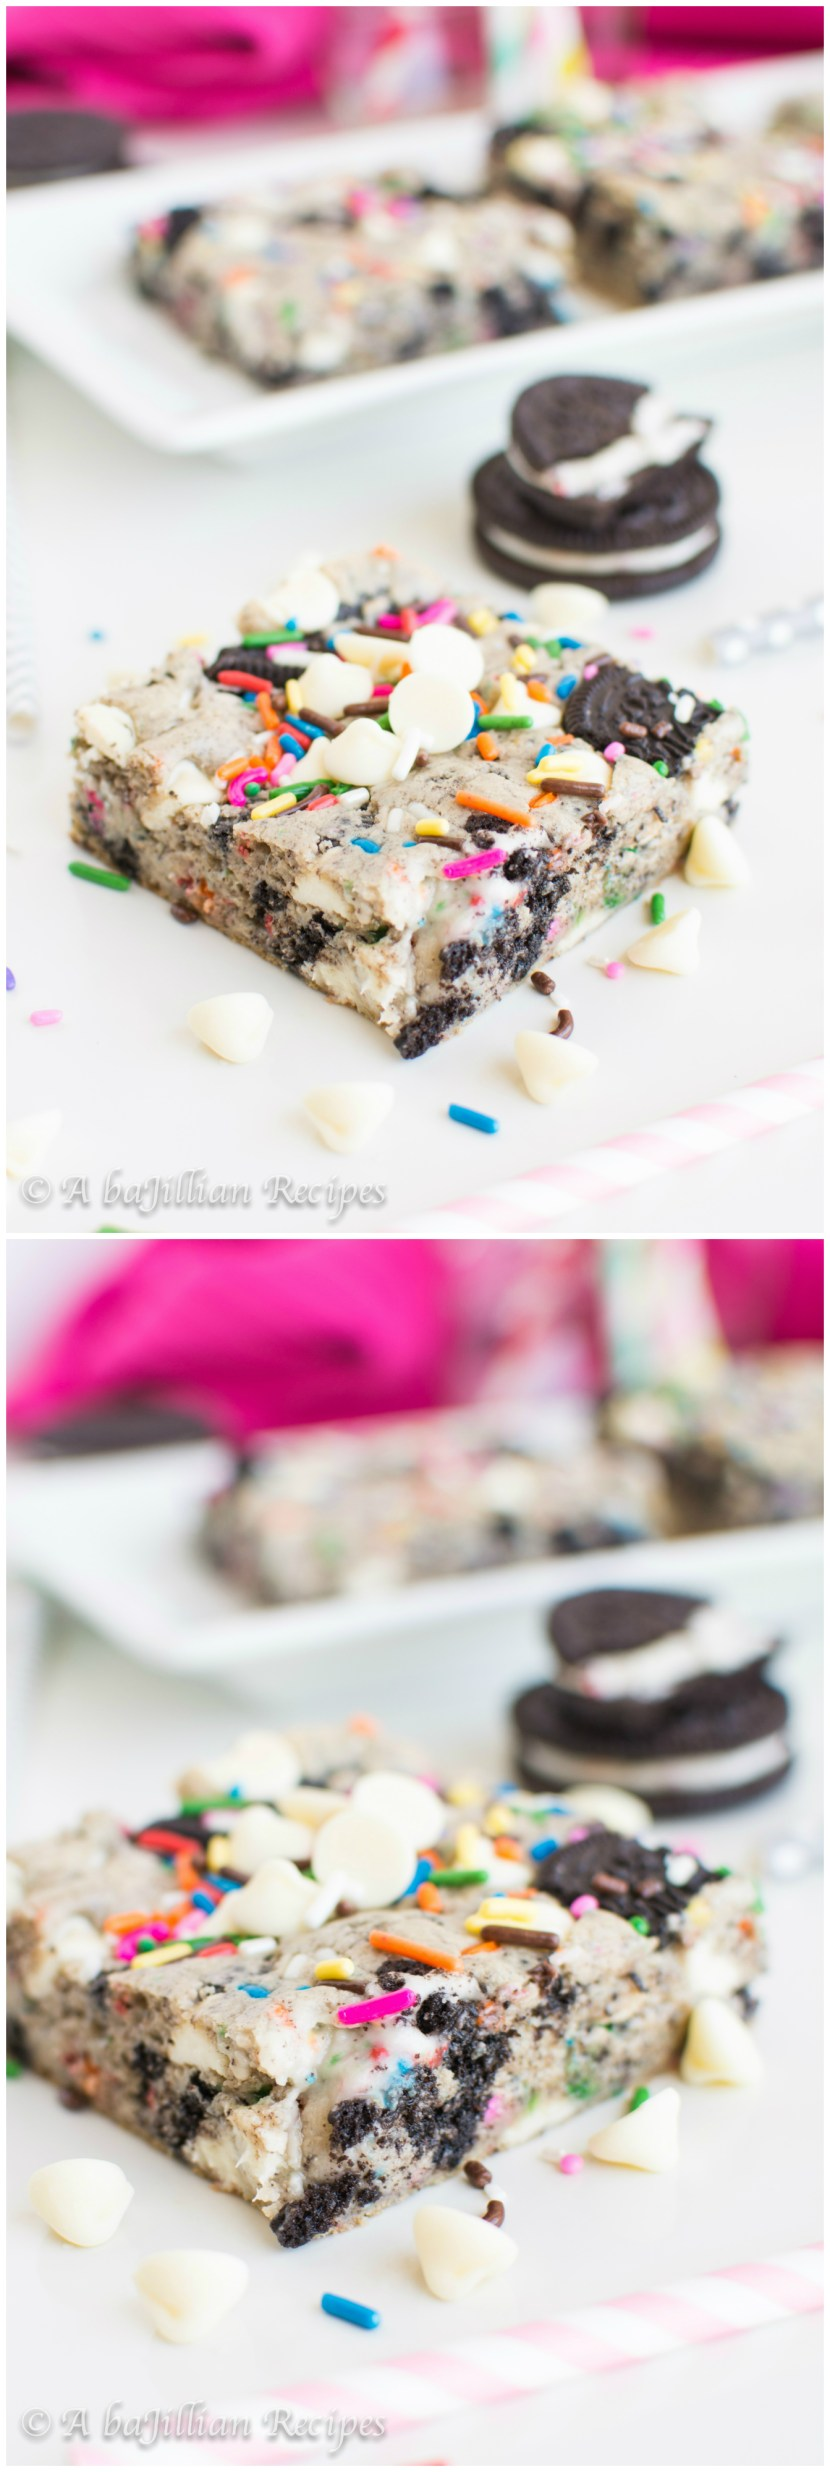 funfetti-cookies-n-creme-blondies-abajillianrecipes.com